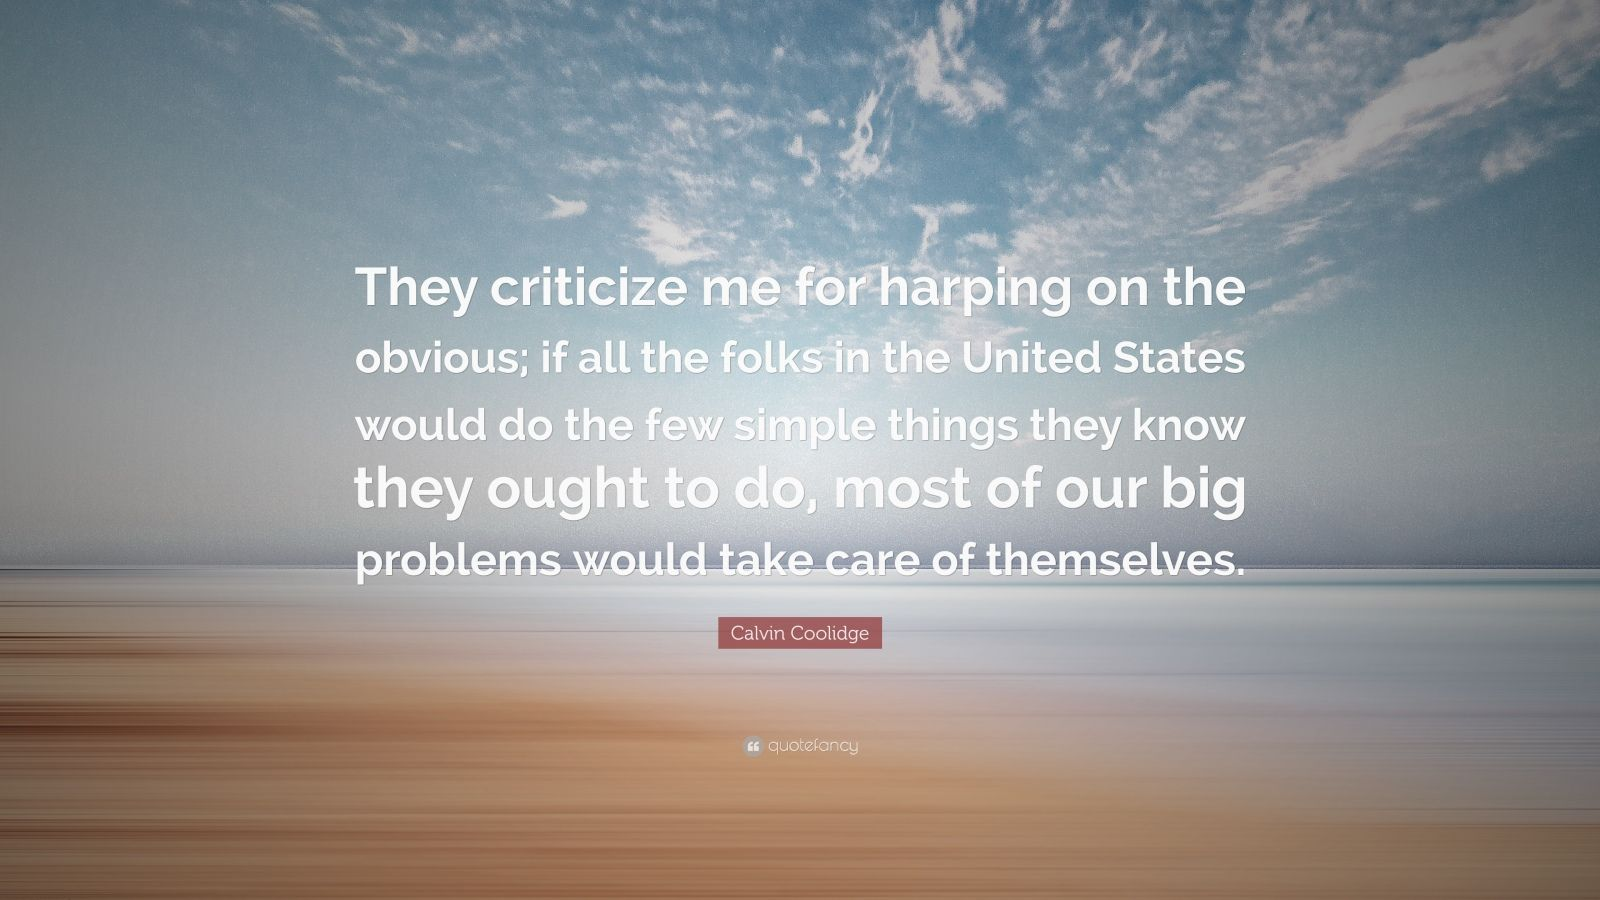 """Calvin Coolidge Quote: """"They criticize me for harping on the obvious; if all the folks in the United States would do the few simple things they know they ought to do, most of our big problems would take care of themselves."""""""